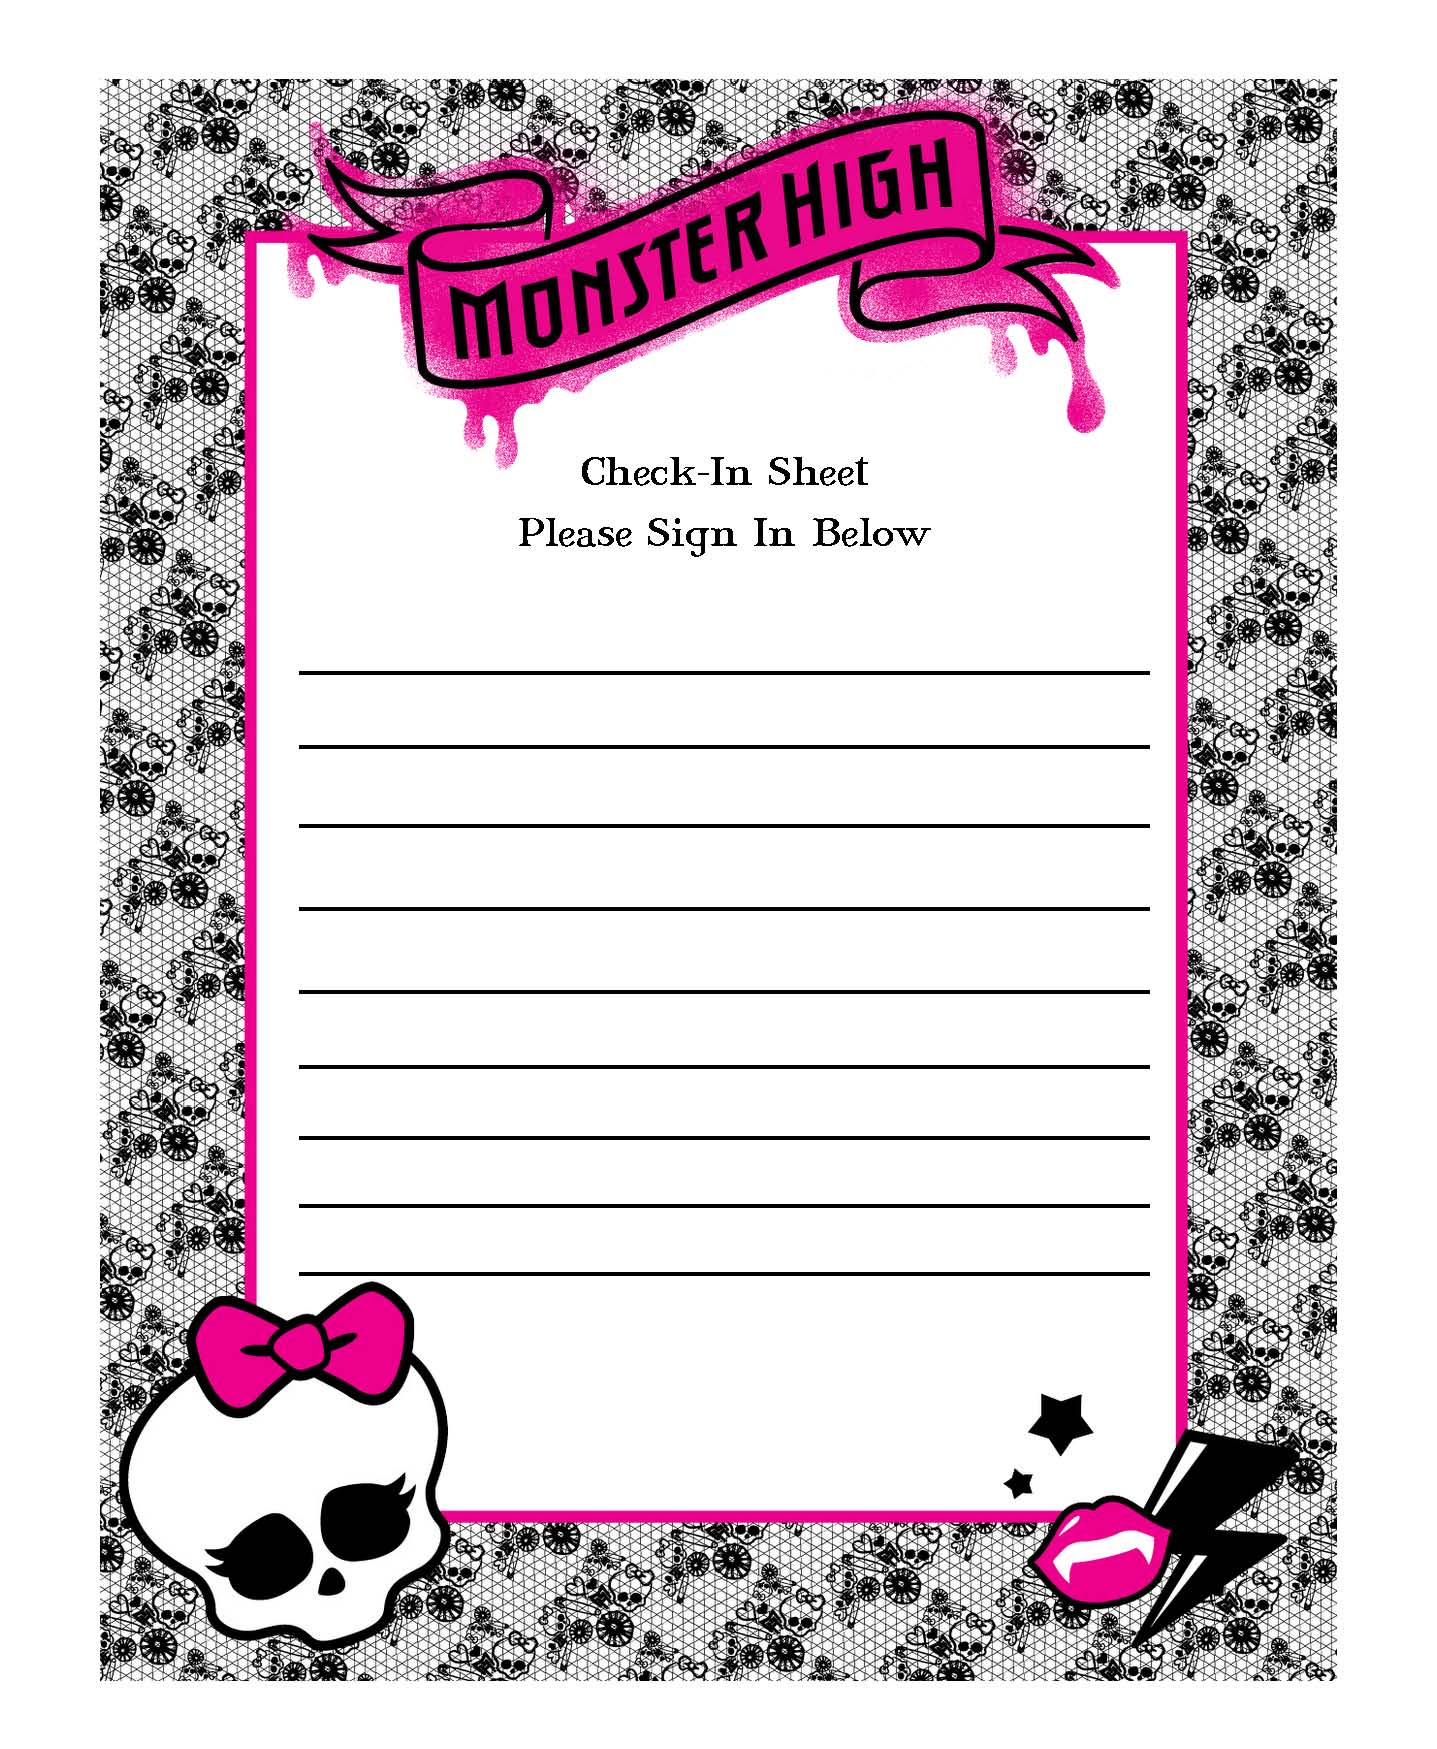 birthday party sign in sheet ; 474949bd59182d72efb058e62090cddb